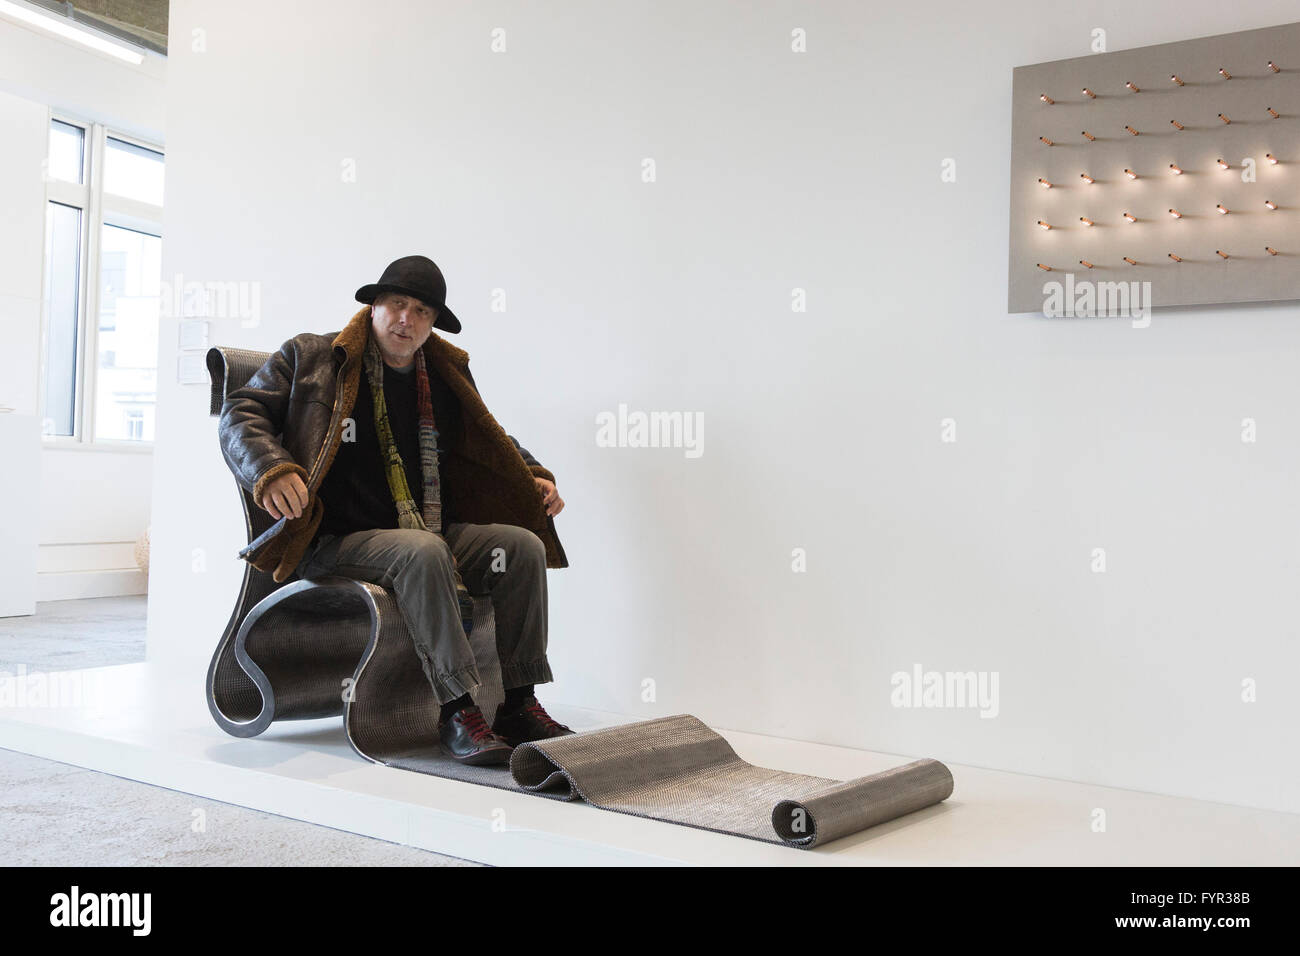 Designer Ron Arad Sits On The Important London